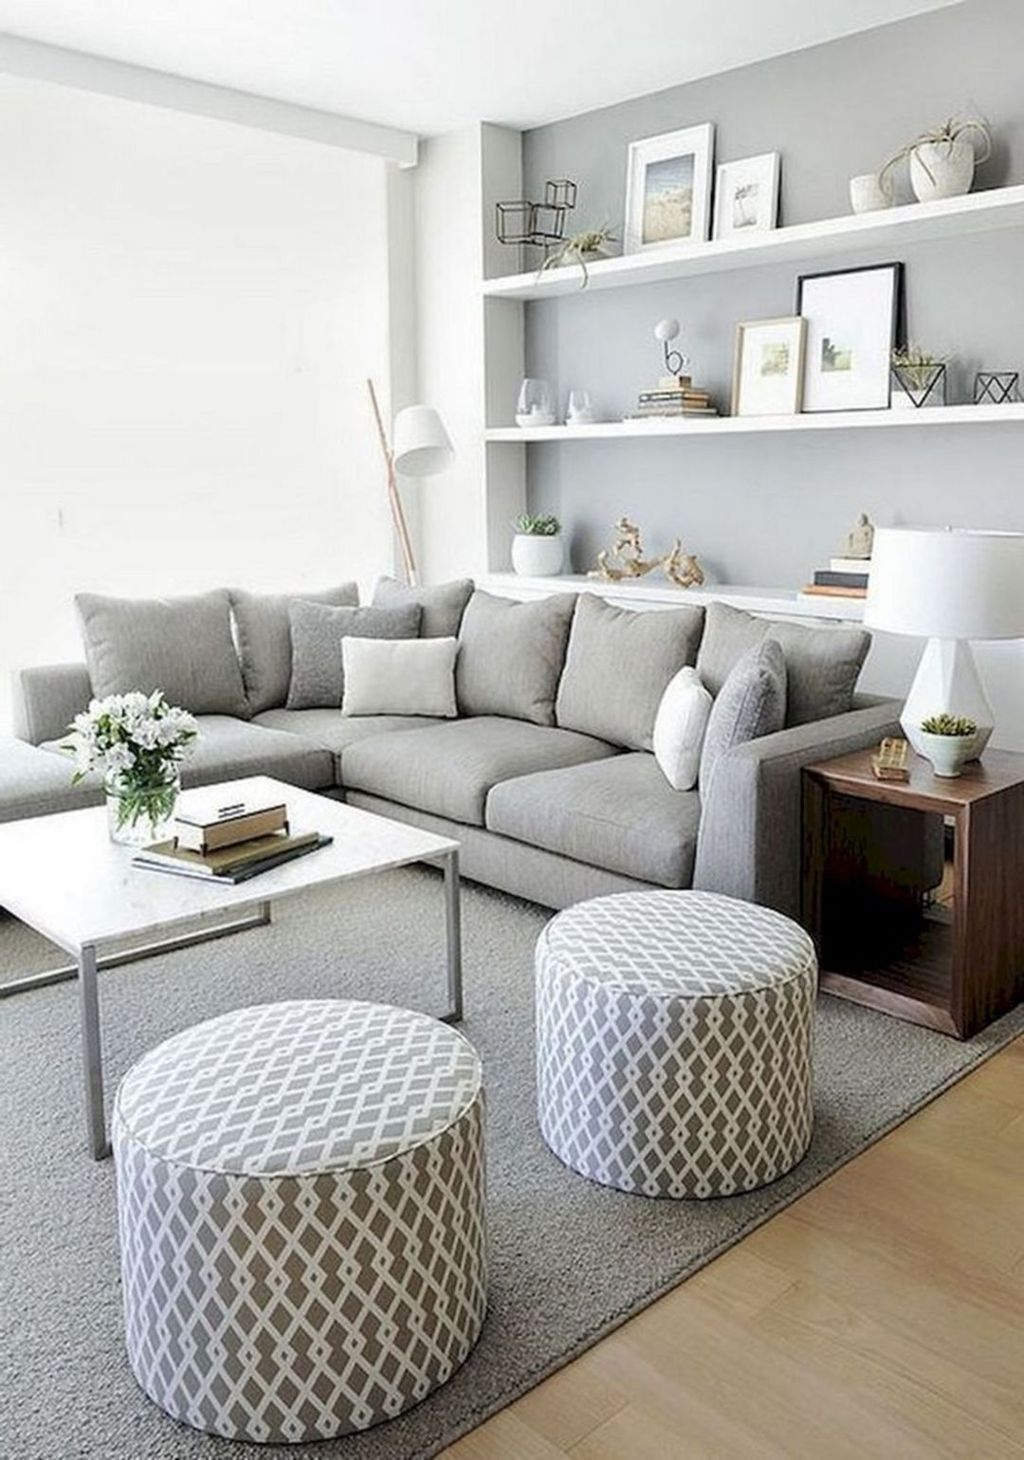 Awesome Minimalist Contemporary Living Room Decor Ideas 09